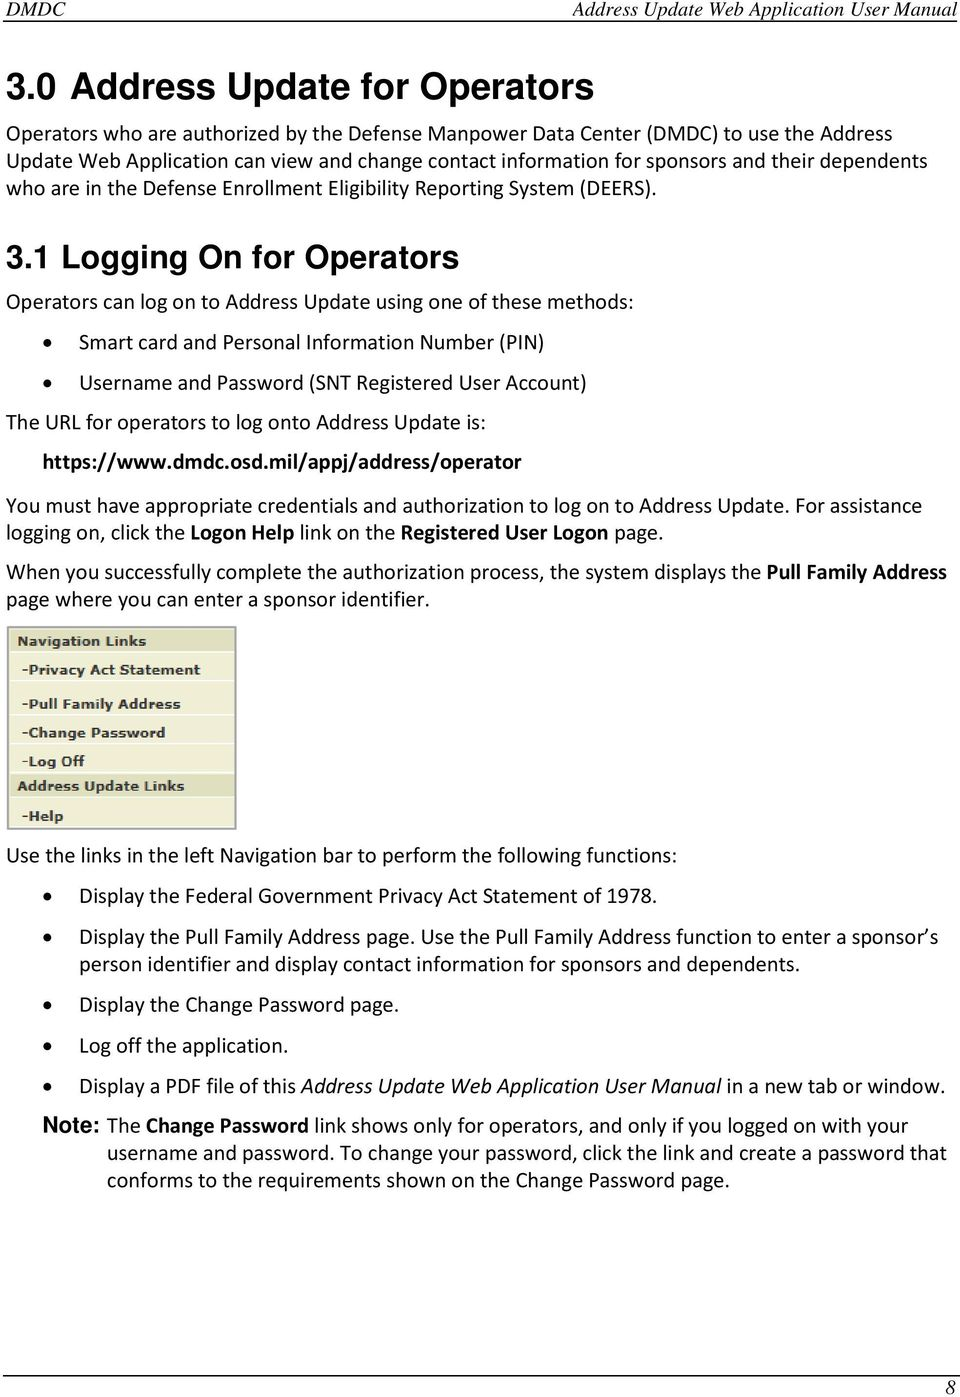 1 Logging On for Operators Operators can log on to Address Update using one of these methods: Smart card and Personal Information Number (PIN) Username and Password (SNT Registered User Account) The